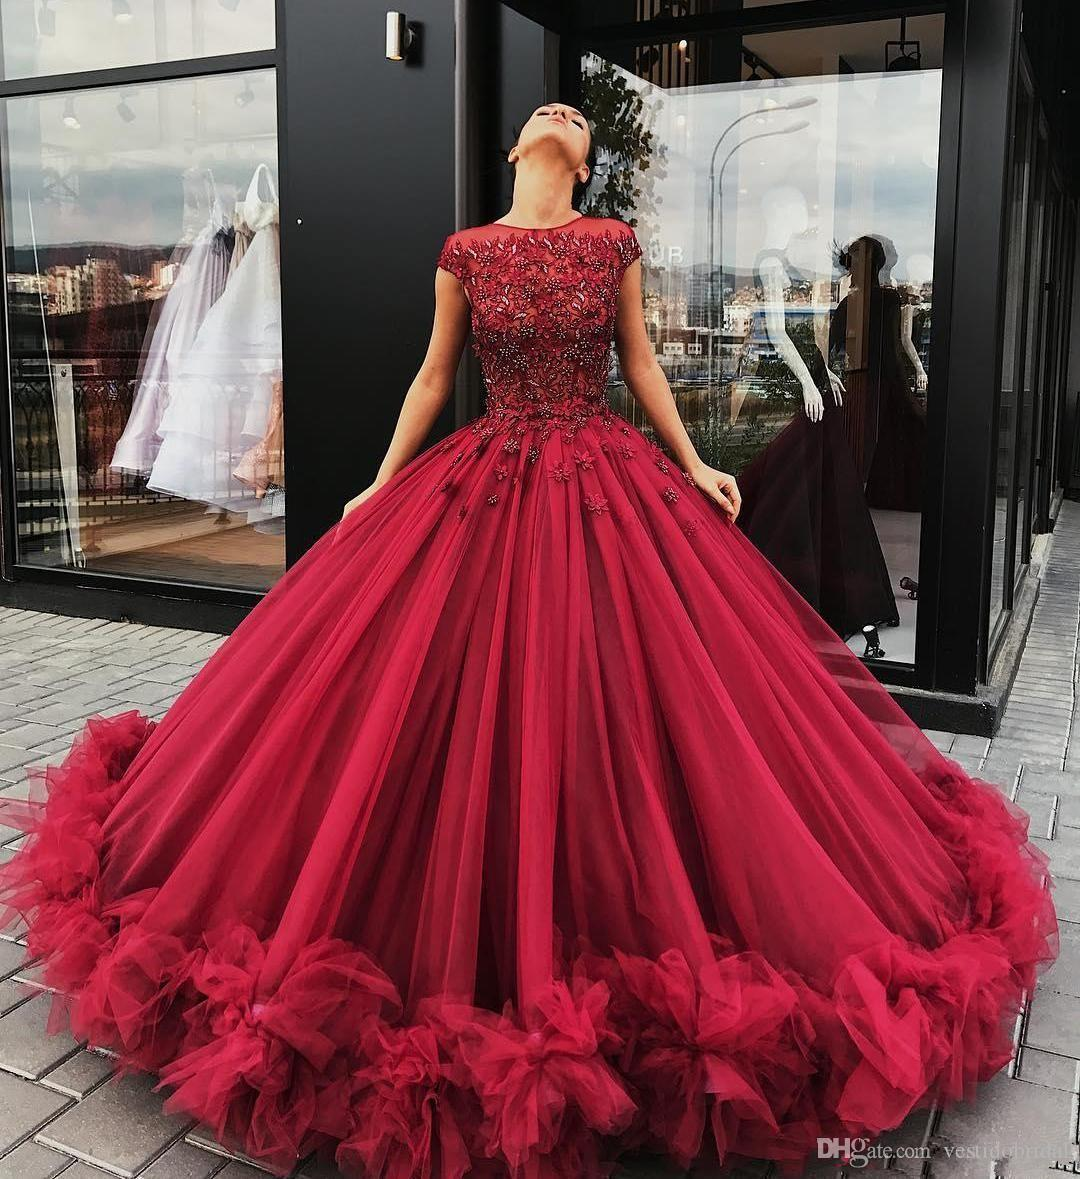 Burgundy Masquerade Ball Gown Quinceanera Dress 2018 Lace Applique ...